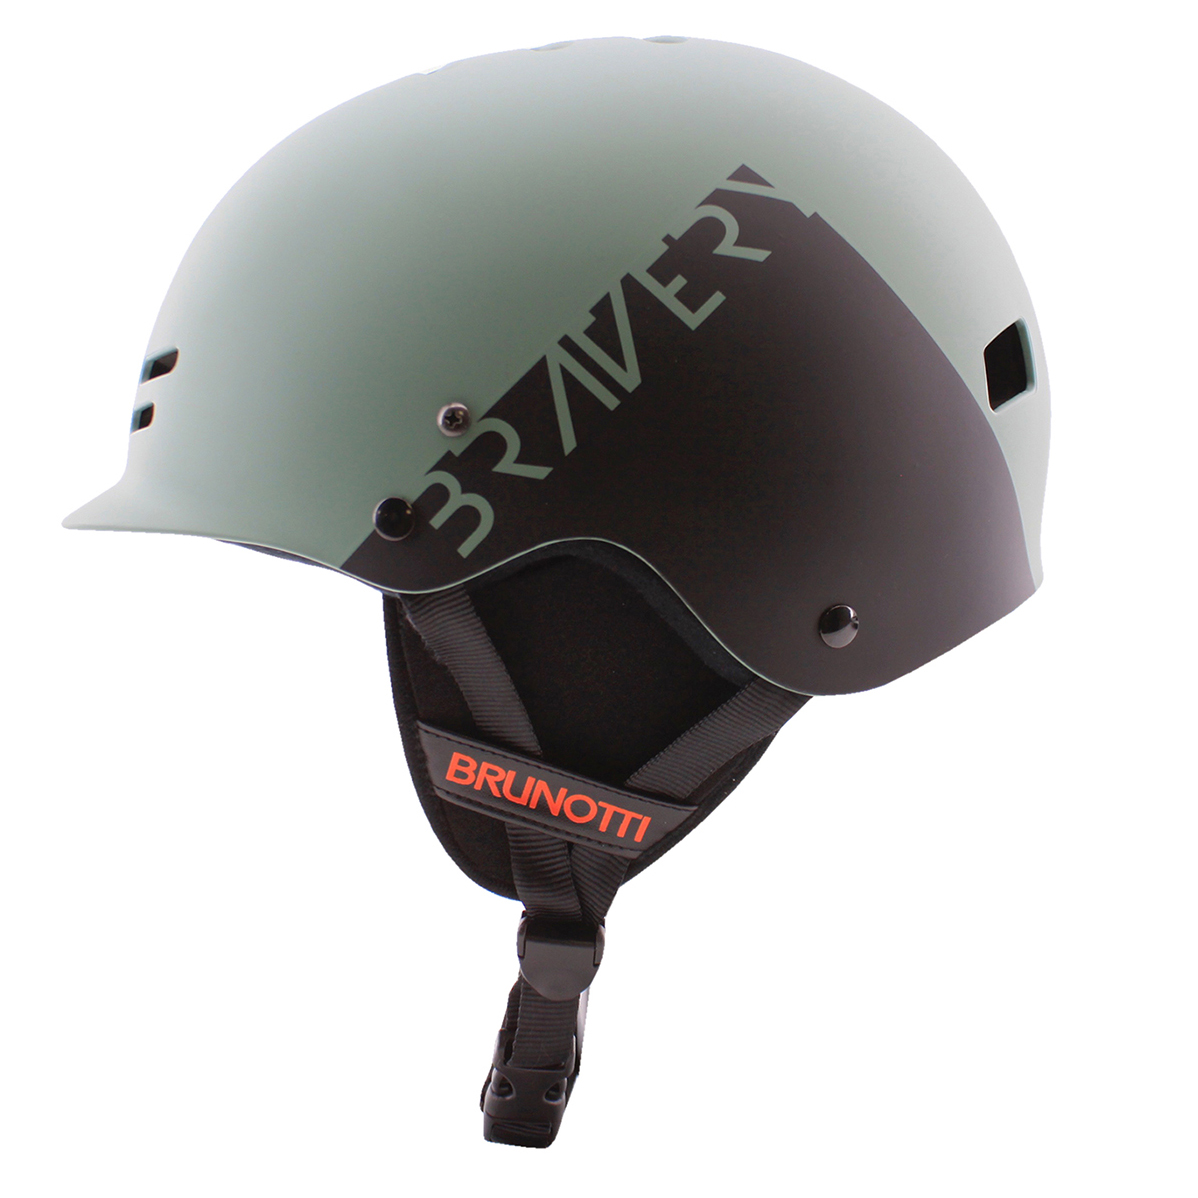 BRAVERY HELMET GRANITE GREEN BRUNOTTI 2017